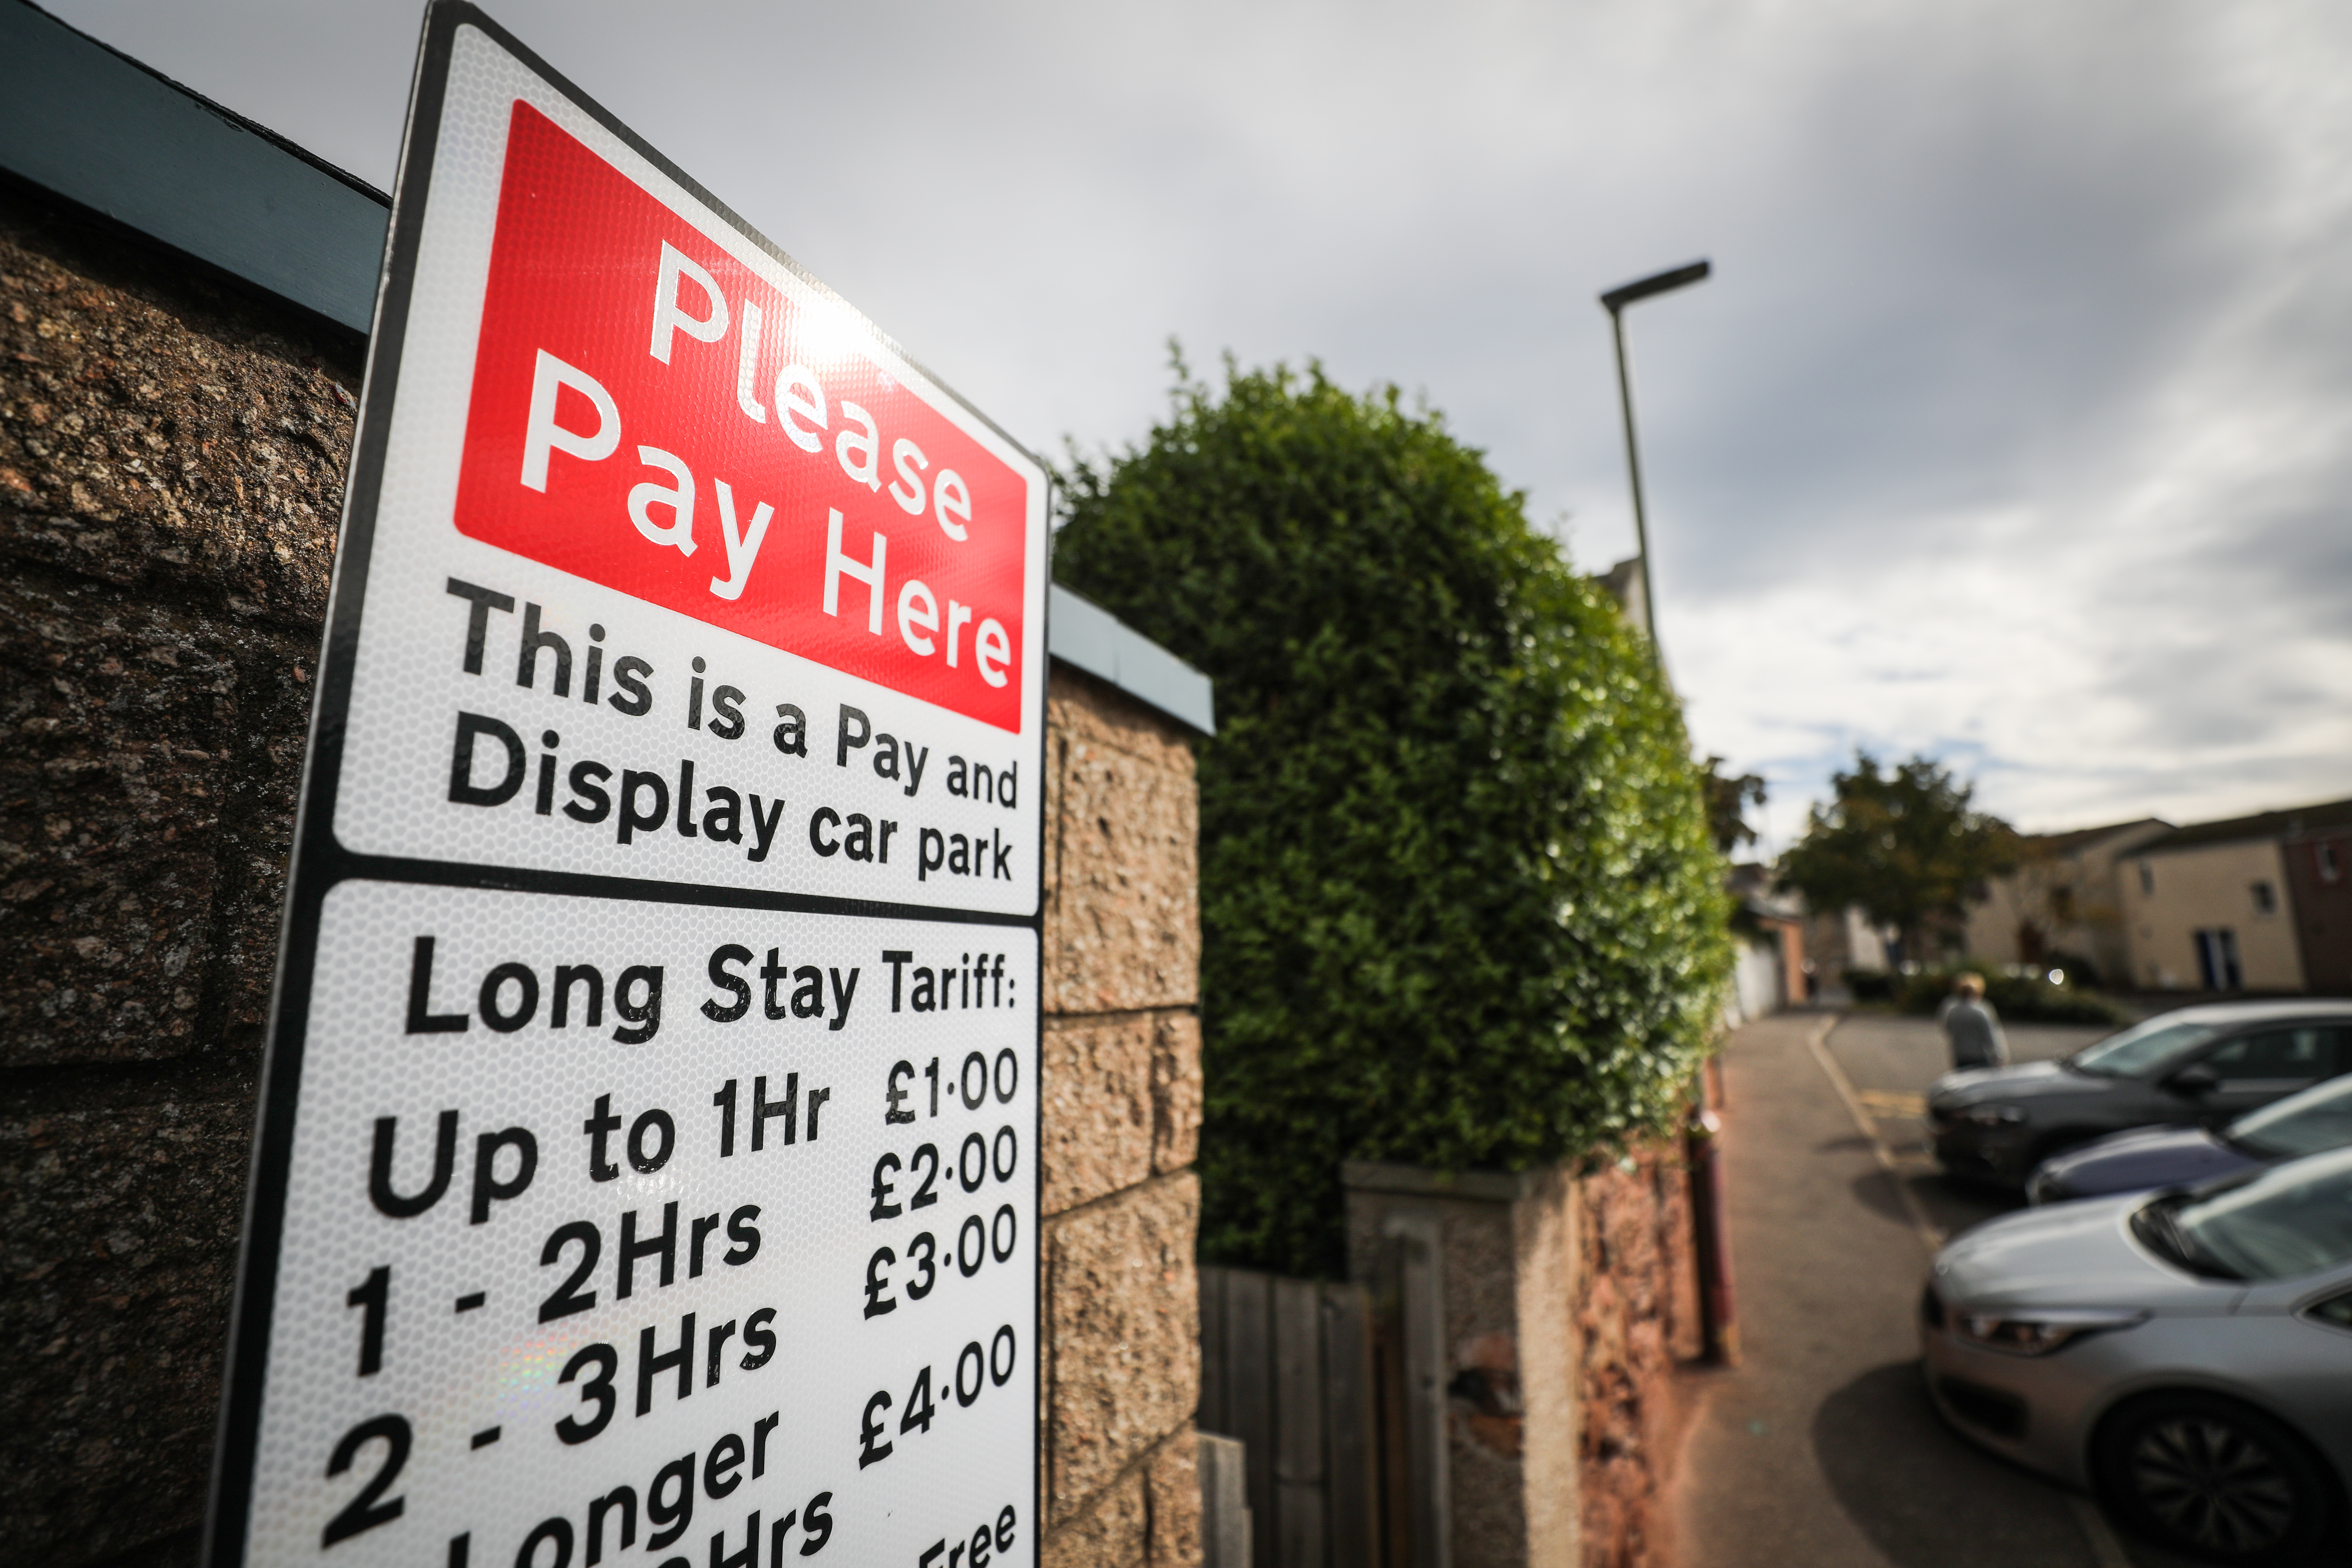 Charges in Angus car parks will remain suspended until the end of March.